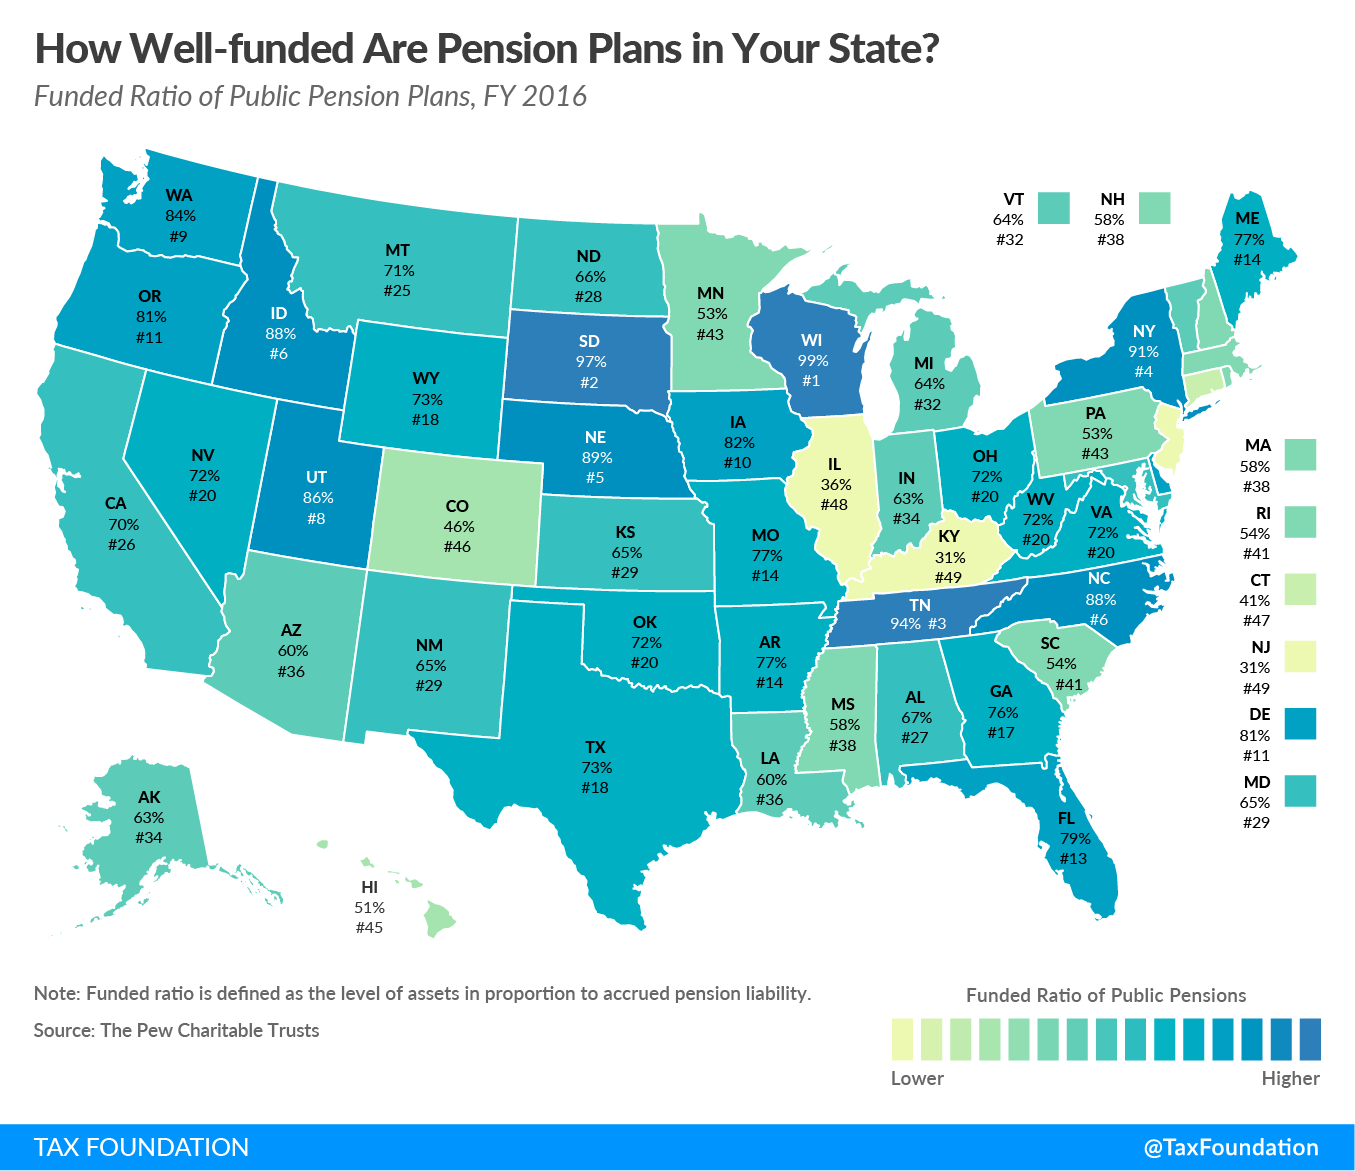 Pensions Funding Ratio Tax Foundation